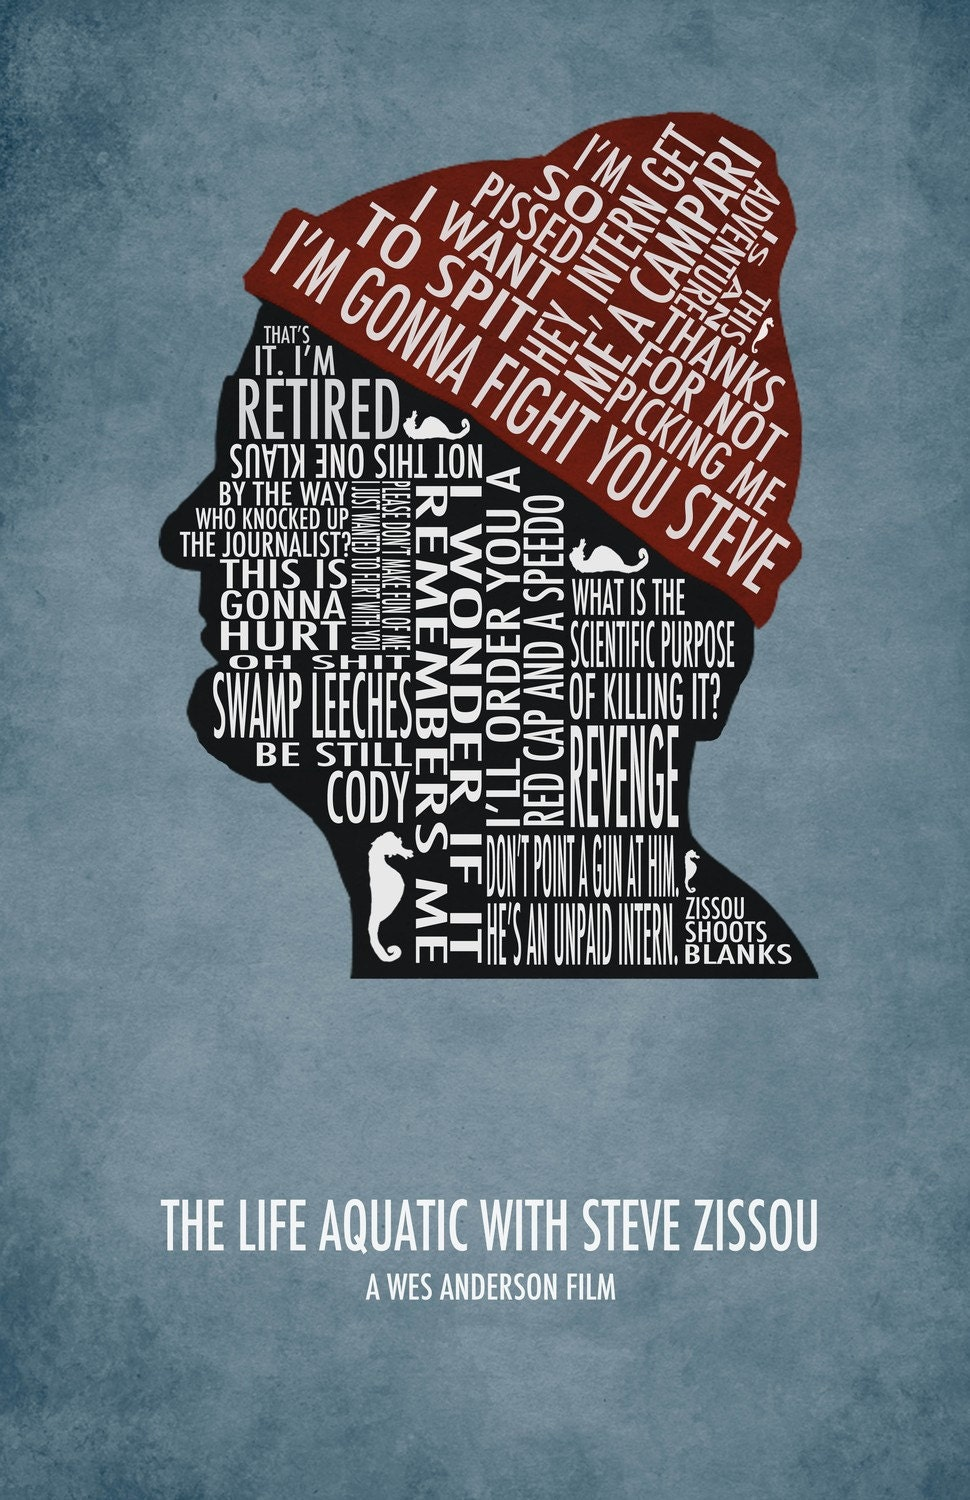 The Life Aquatic with Steve Zissou Typography Poster